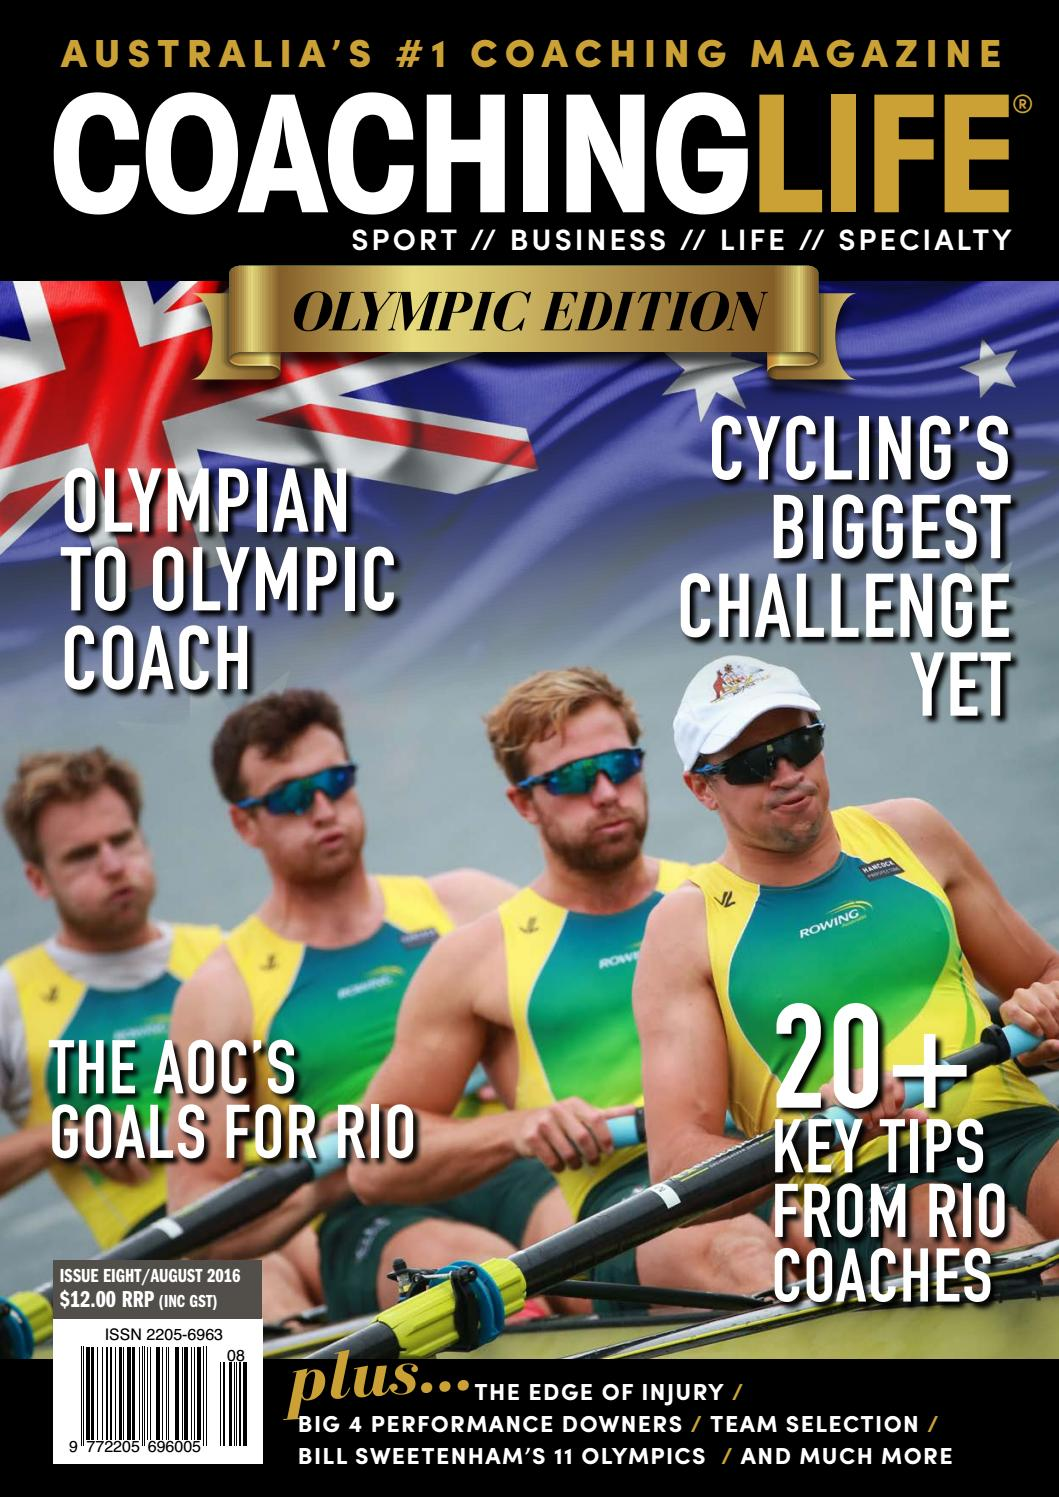 d0b3e683c00 8 - Olympics Edition by Coaching Life - issuu